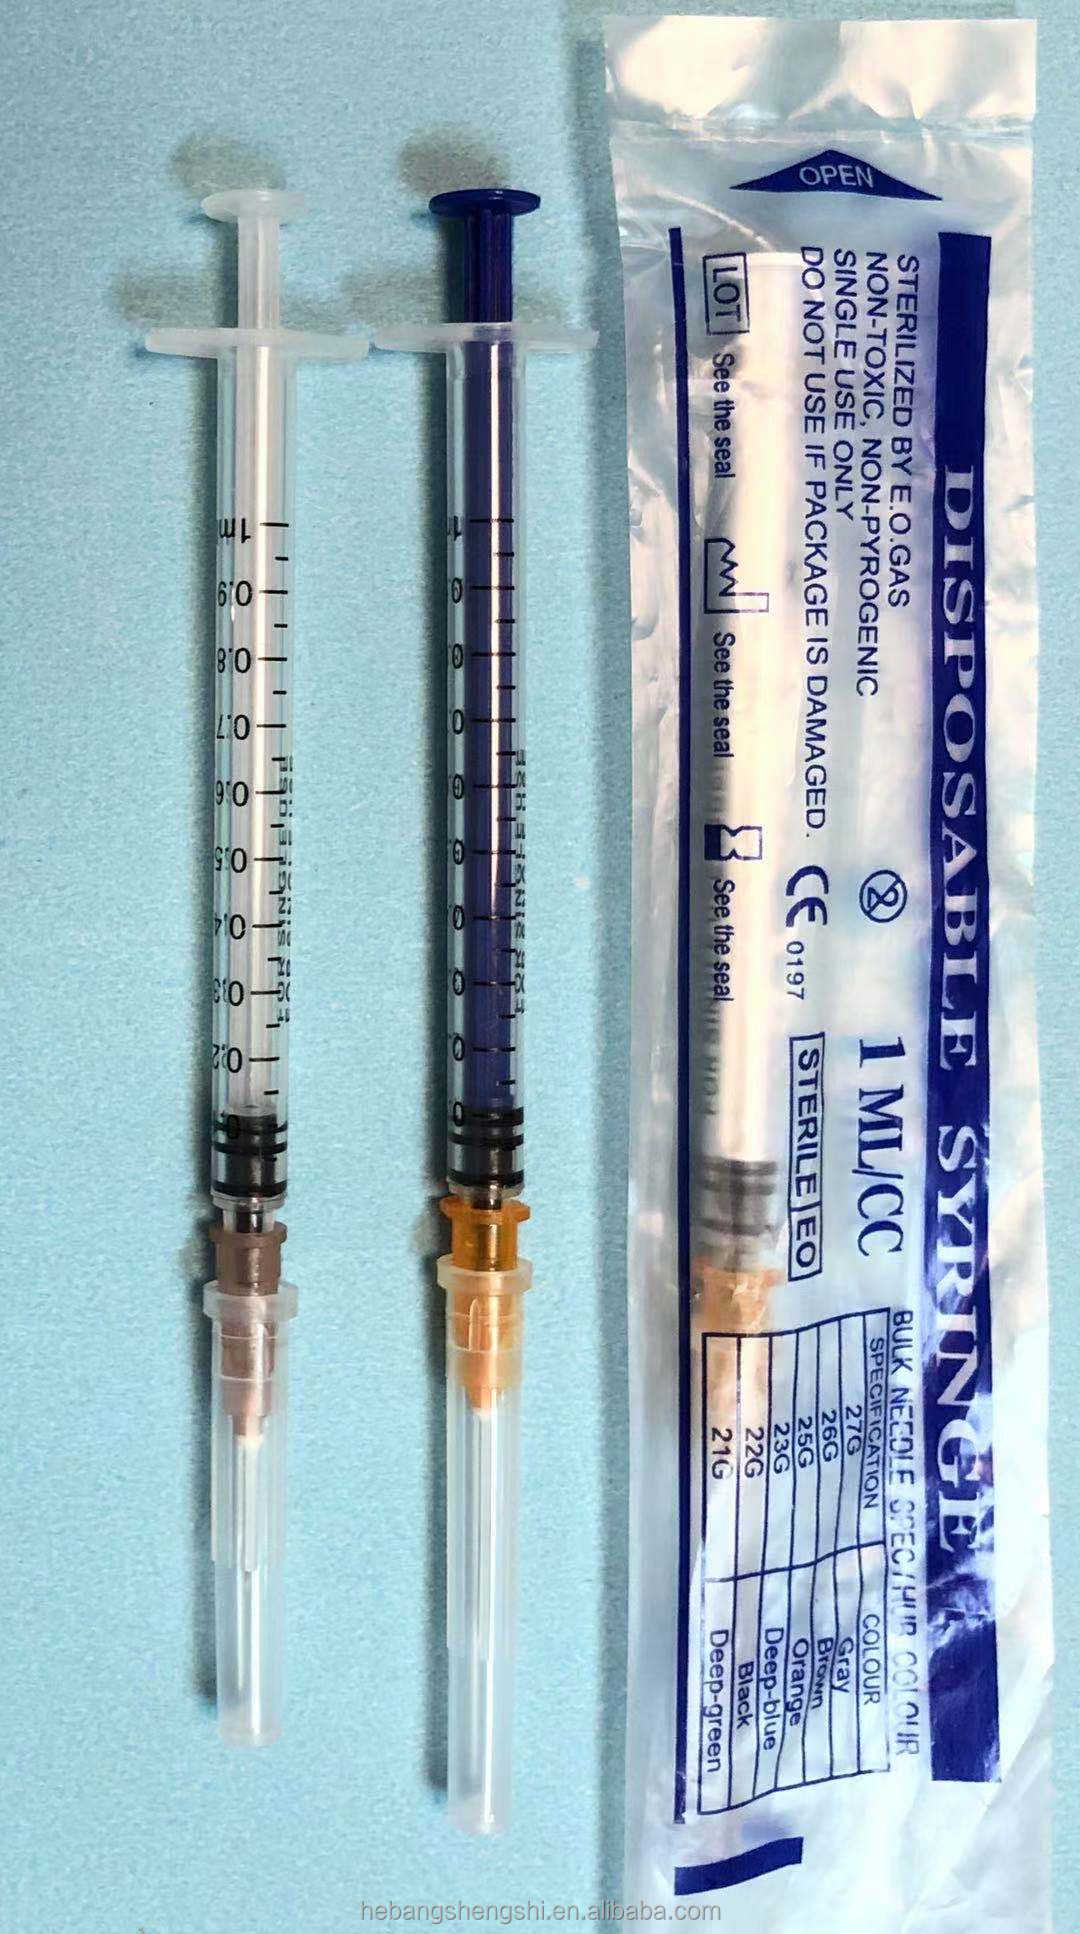 Luer Lock Syringe Luer Slip 1ml The Factory Inventory Factory Price